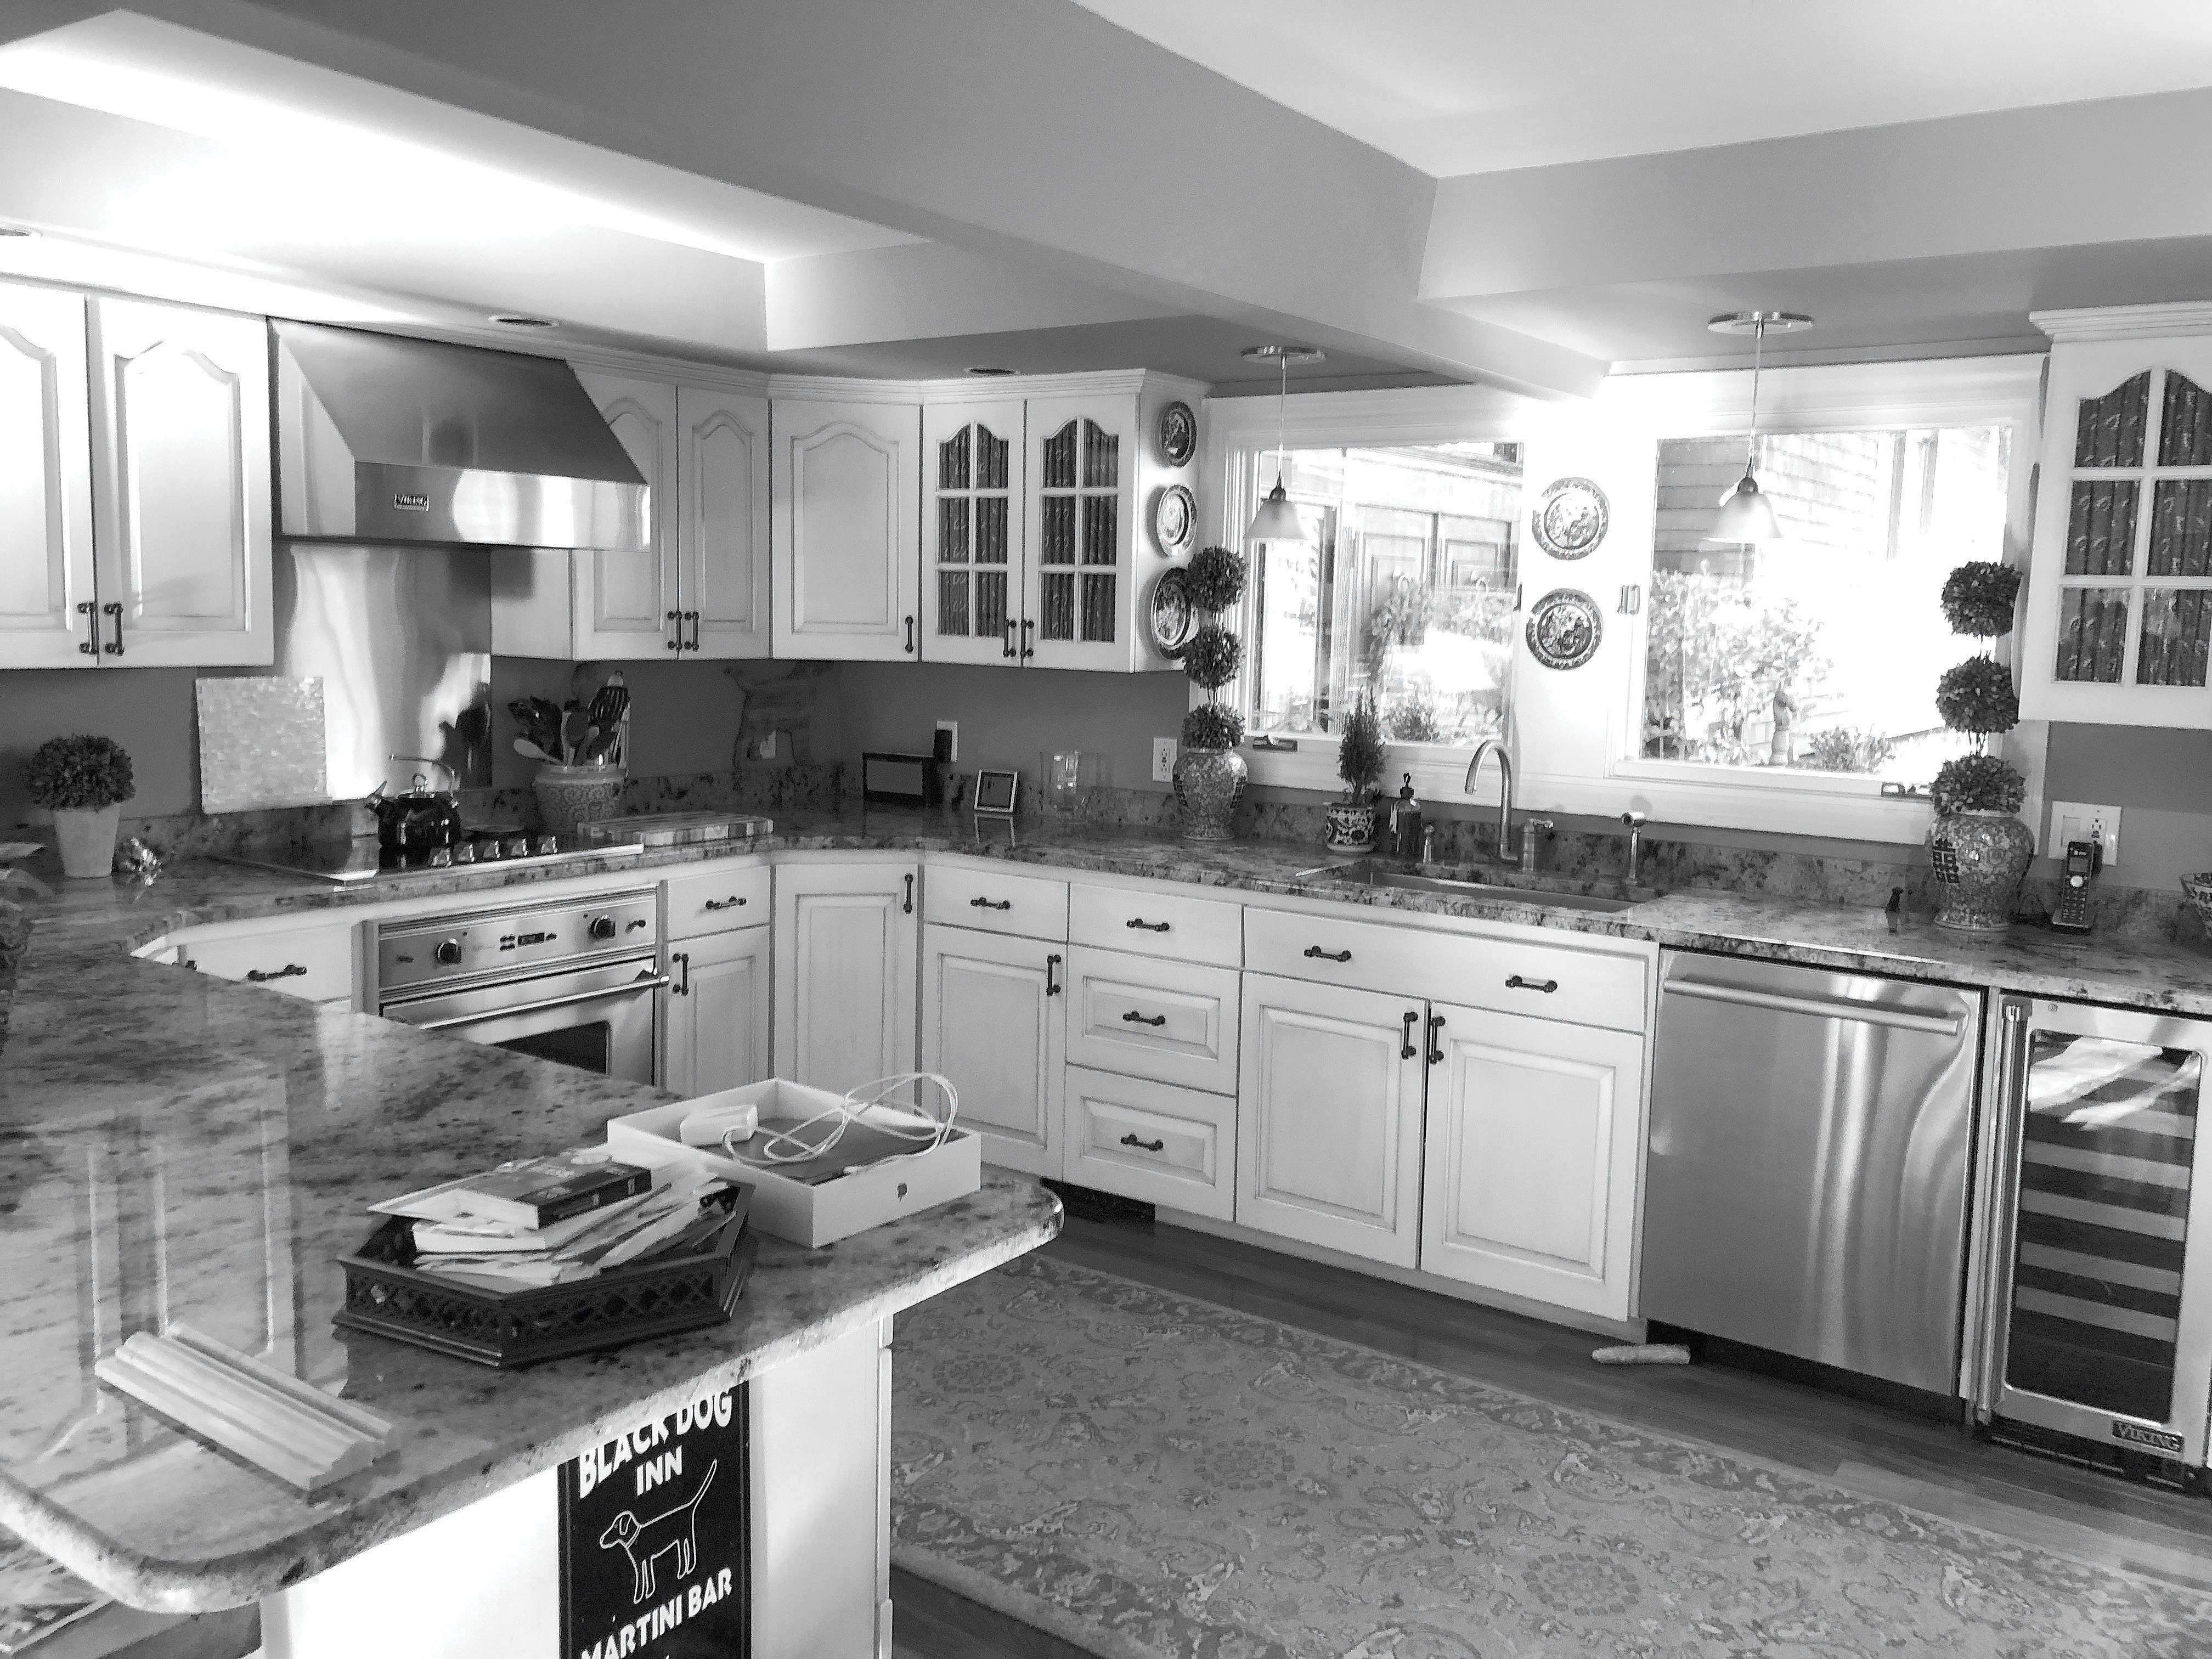 The kitchen before the renovation project was completed.